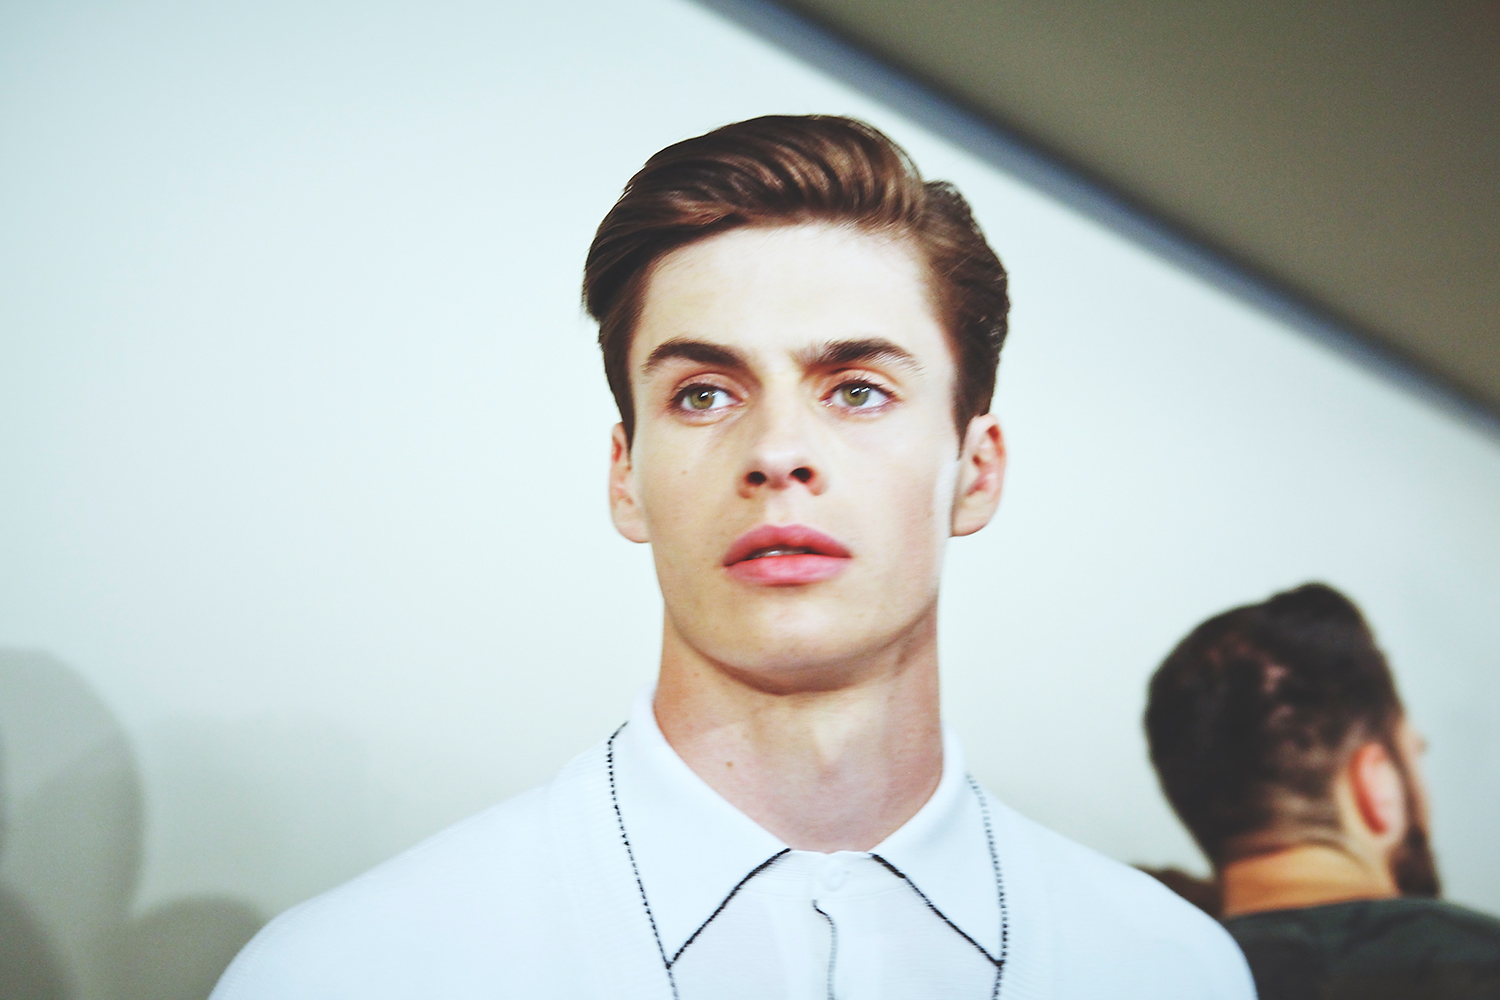 HERO HARRY CARR BACKSTAGE BOTTEGA VENETA IMG_2596